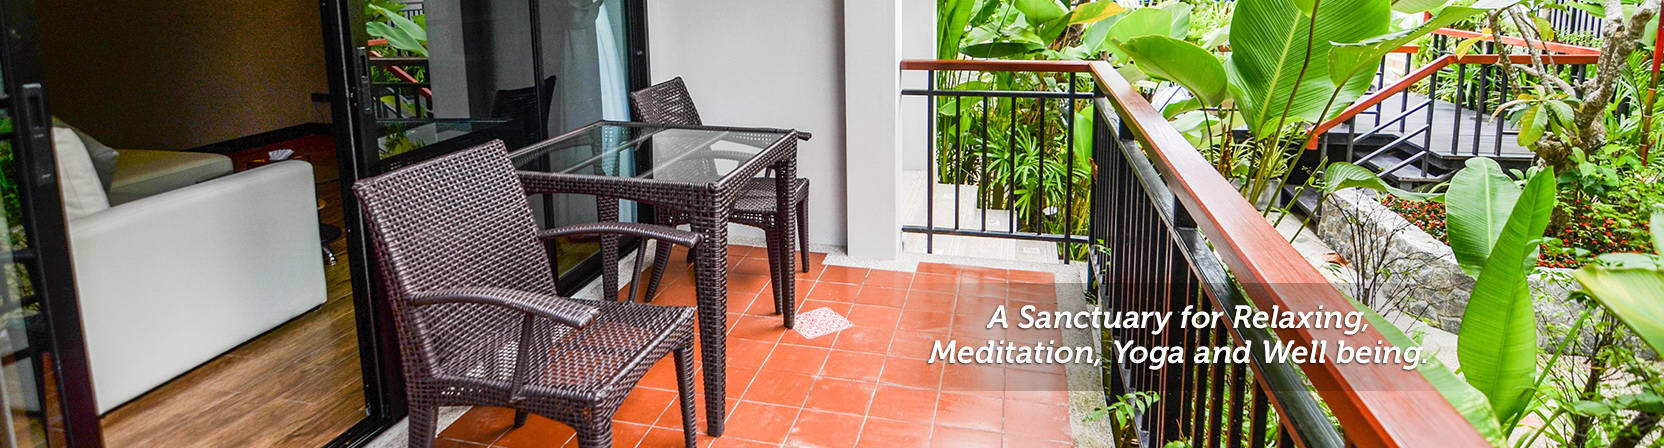 Coco Retreat Phuket Sanctuary Relaxing Meditation Yoga Well Being